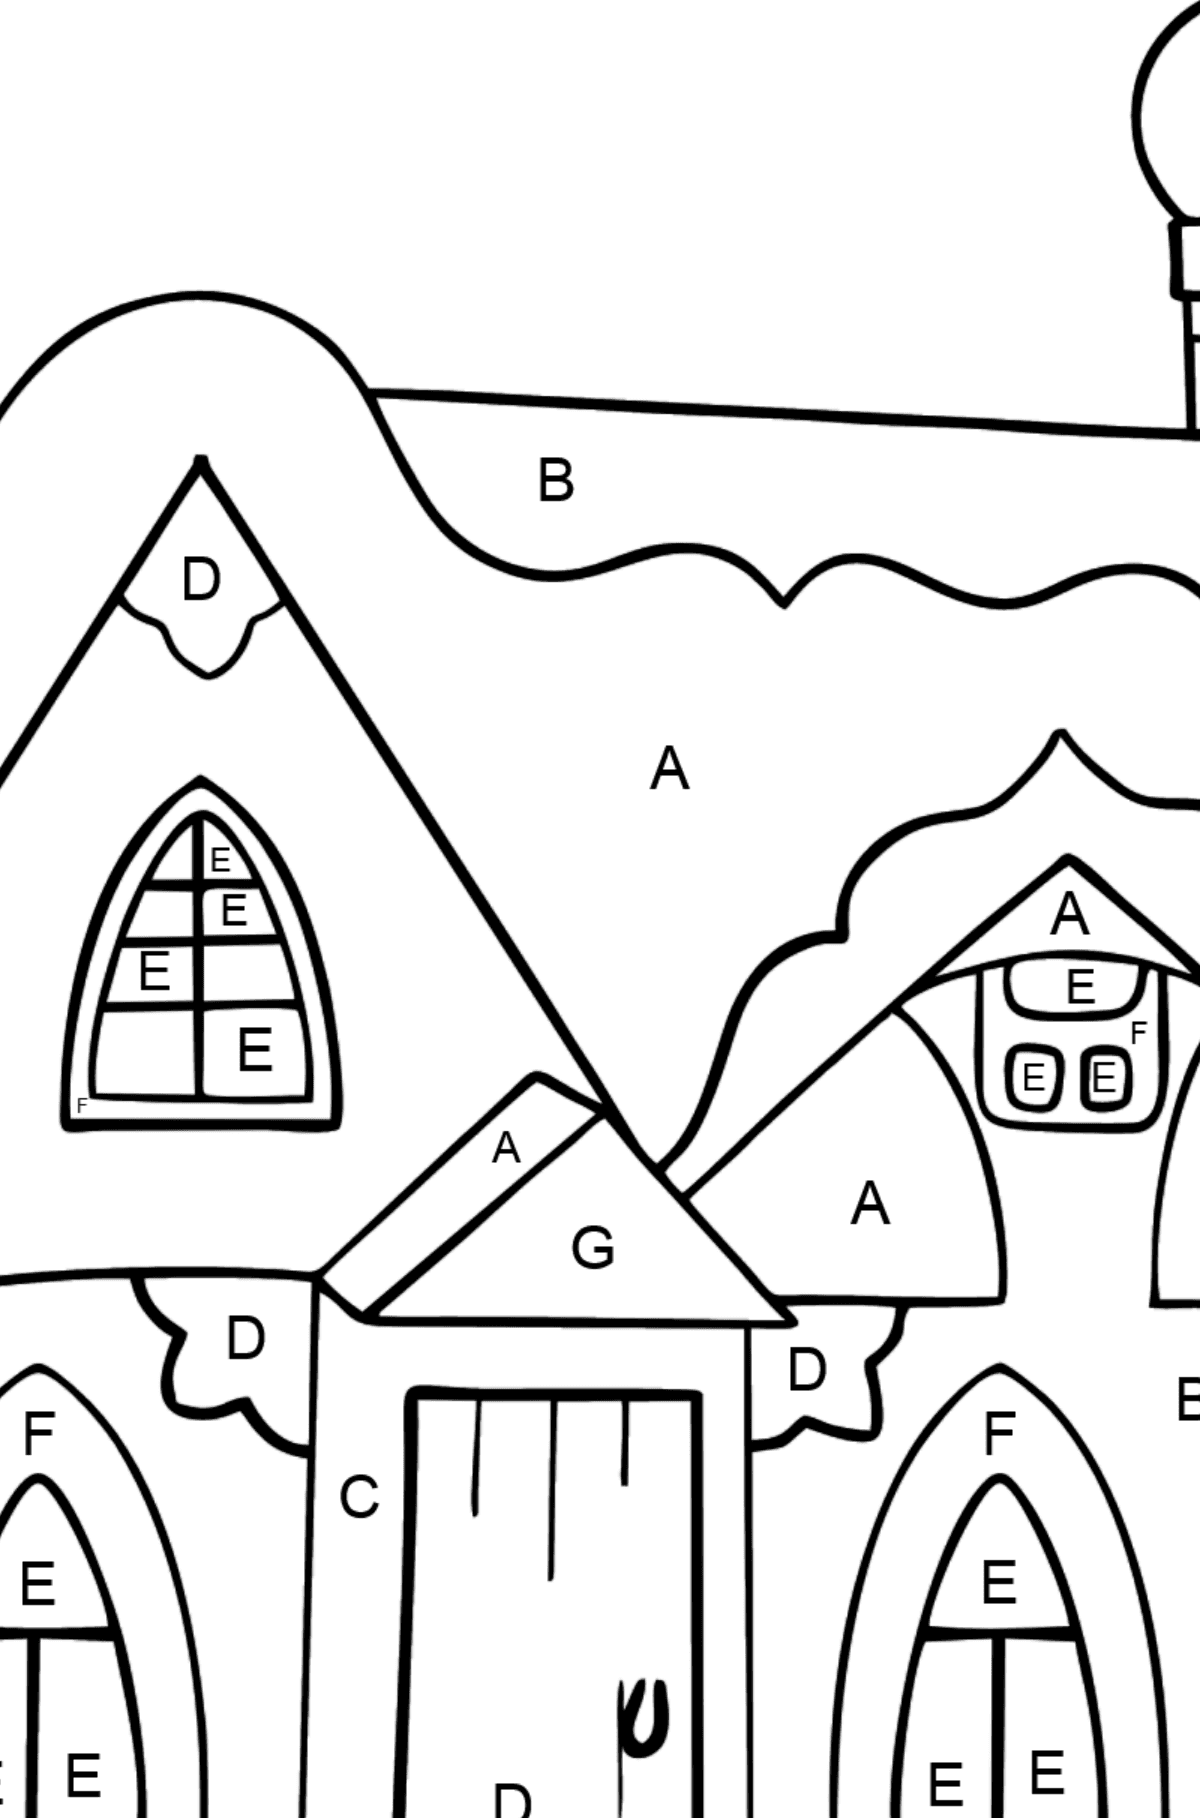 Complex Coloring Page - A Fairytale House - Coloring by Letters for Kids